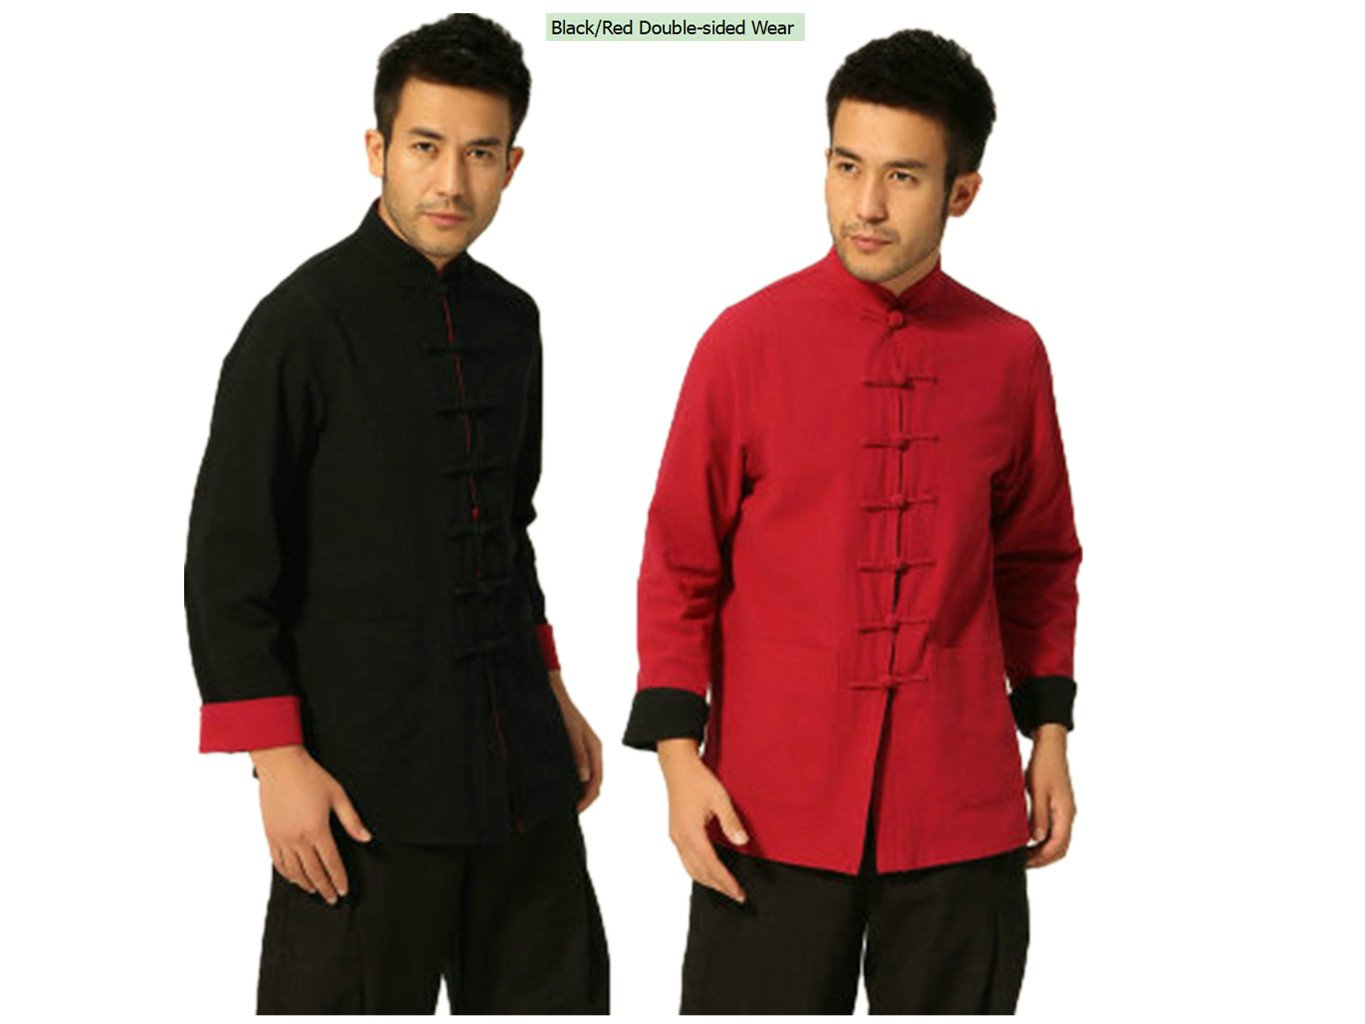 100% Cotton Tang Suits Double-sided Wear Retro Jackets Business Jackets